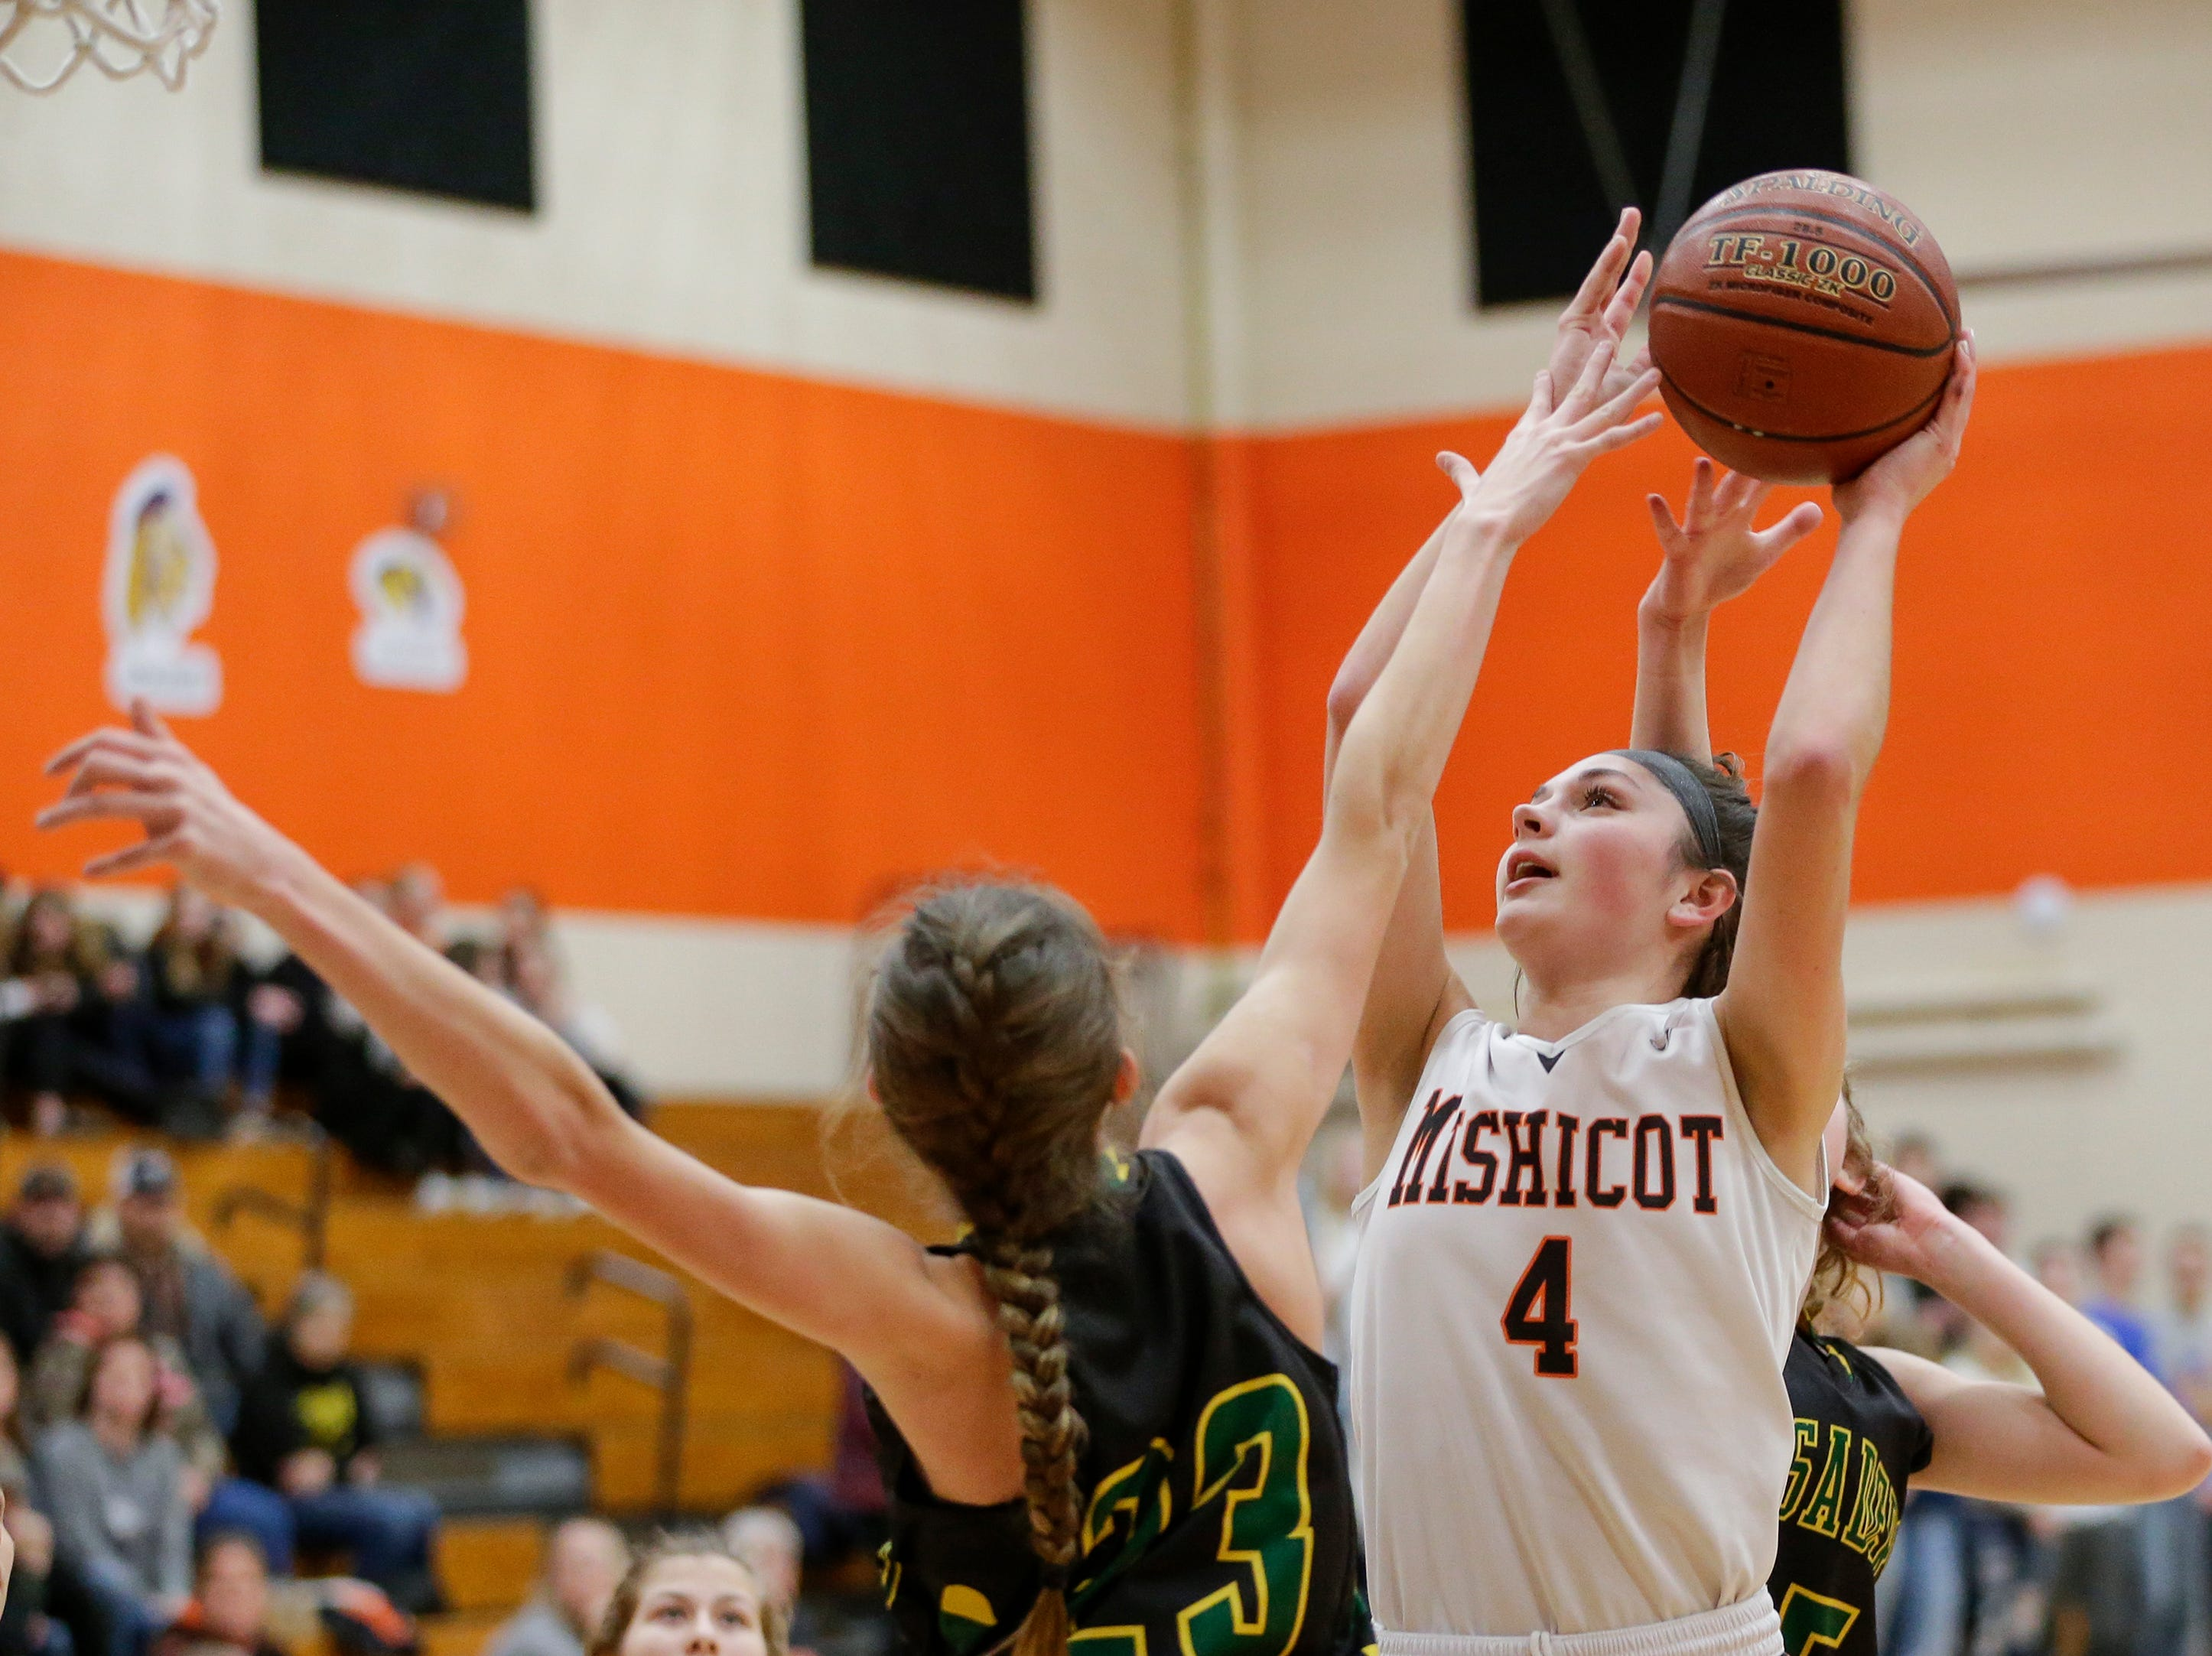 Mishicot's Desiree Kleiman shoots against Sheboygan Area Lutheran during a Big East Conference matchup at Mishicot High School Friday, January 11, 2019, in Mishicot, Wis. Joshua Clark/USA TODAY NETWORK-Wisconsin